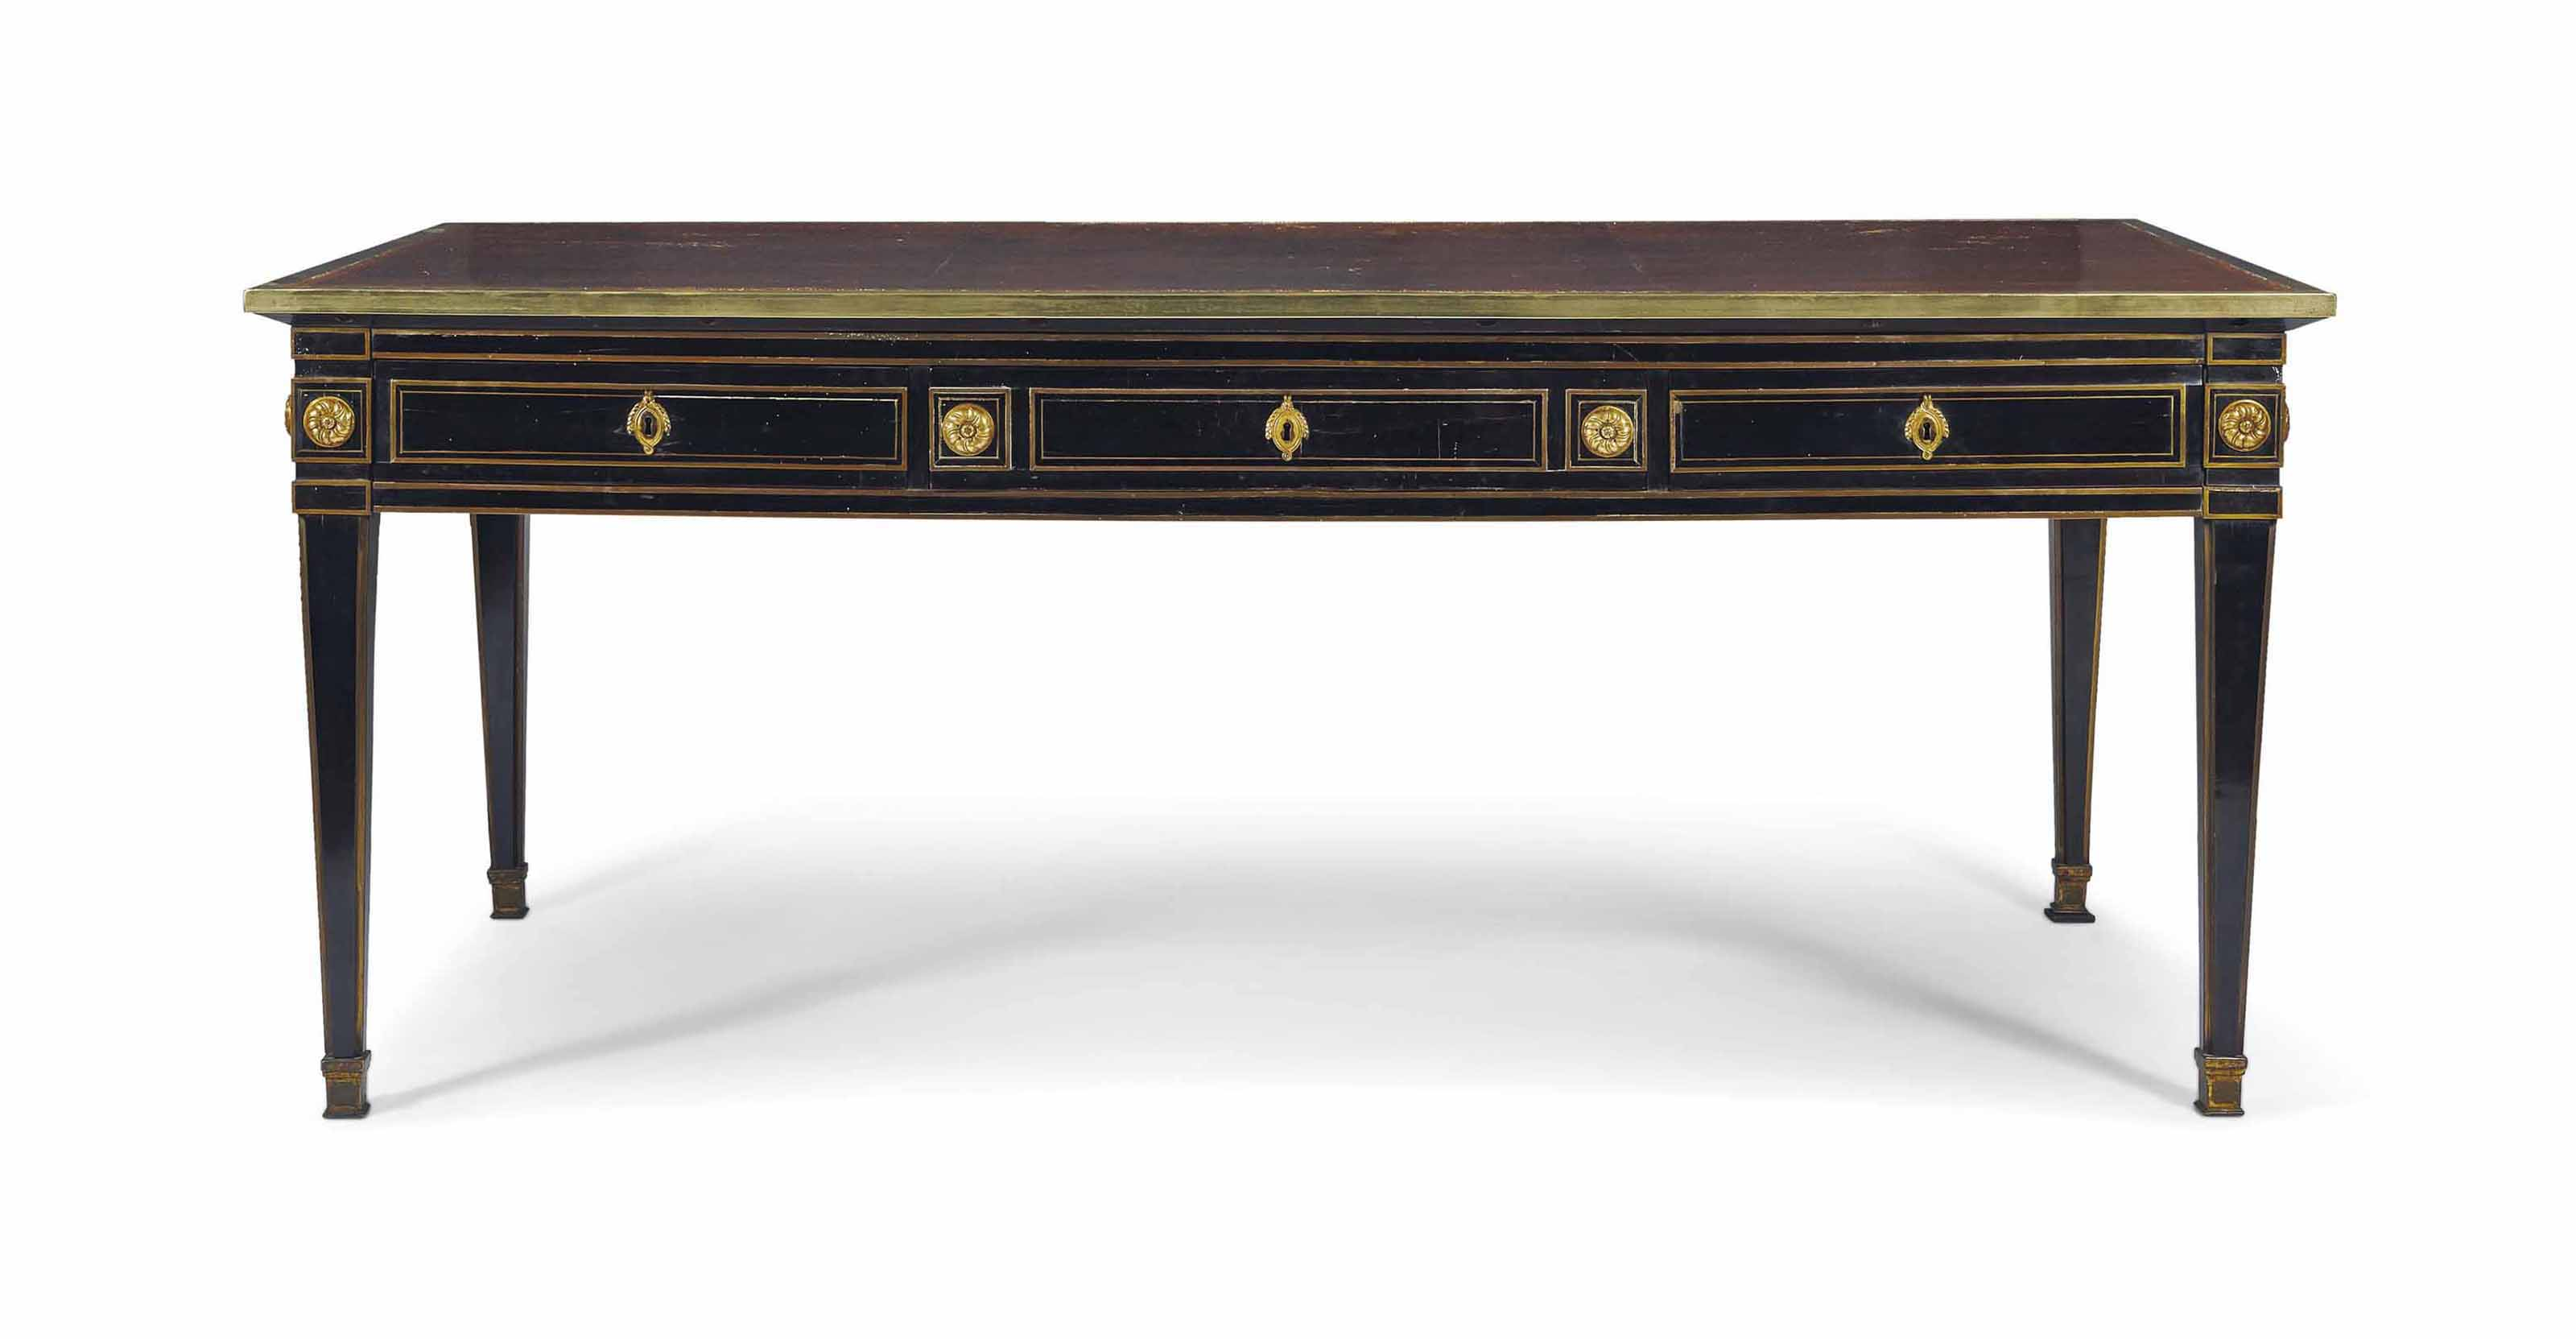 bureau plat d 39 epoque louis xvi estampille de philippe. Black Bedroom Furniture Sets. Home Design Ideas